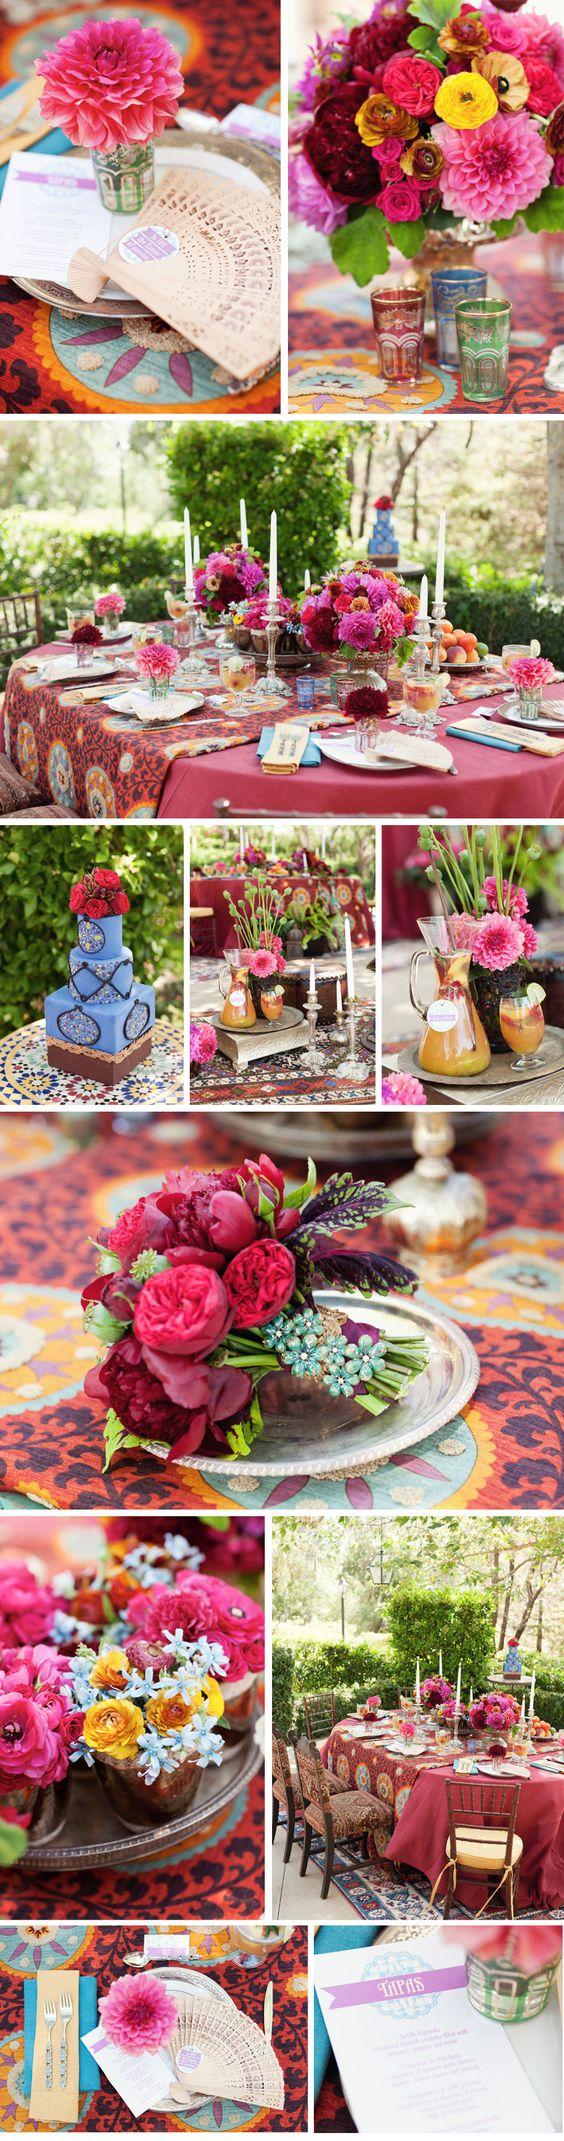 """Do you prefer a romantic picnic to a fancy restaurant dinner? Are the best moments those spent relaxing """"alfresco style?"""" Reminiscent of the French countryside, a moveable  feast wedding theme promises an unforgettable celebration of love in a chic yet comfortable setting"""